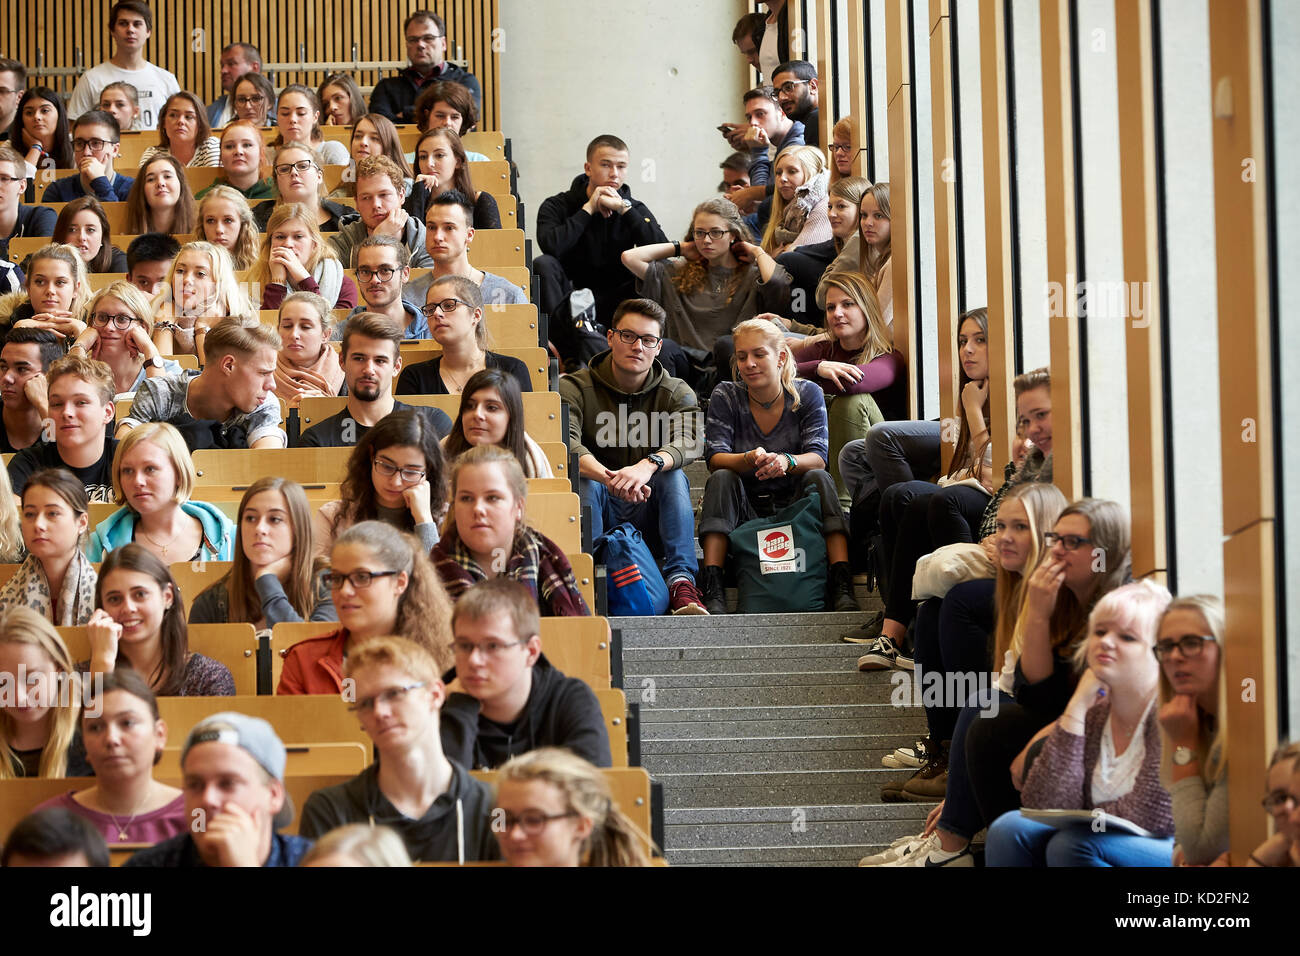 Koblenz, Germany. 09th Oct, 2017. Students sit closely together in the Audimax of the University in Koblenz, Germany, - Stock Image